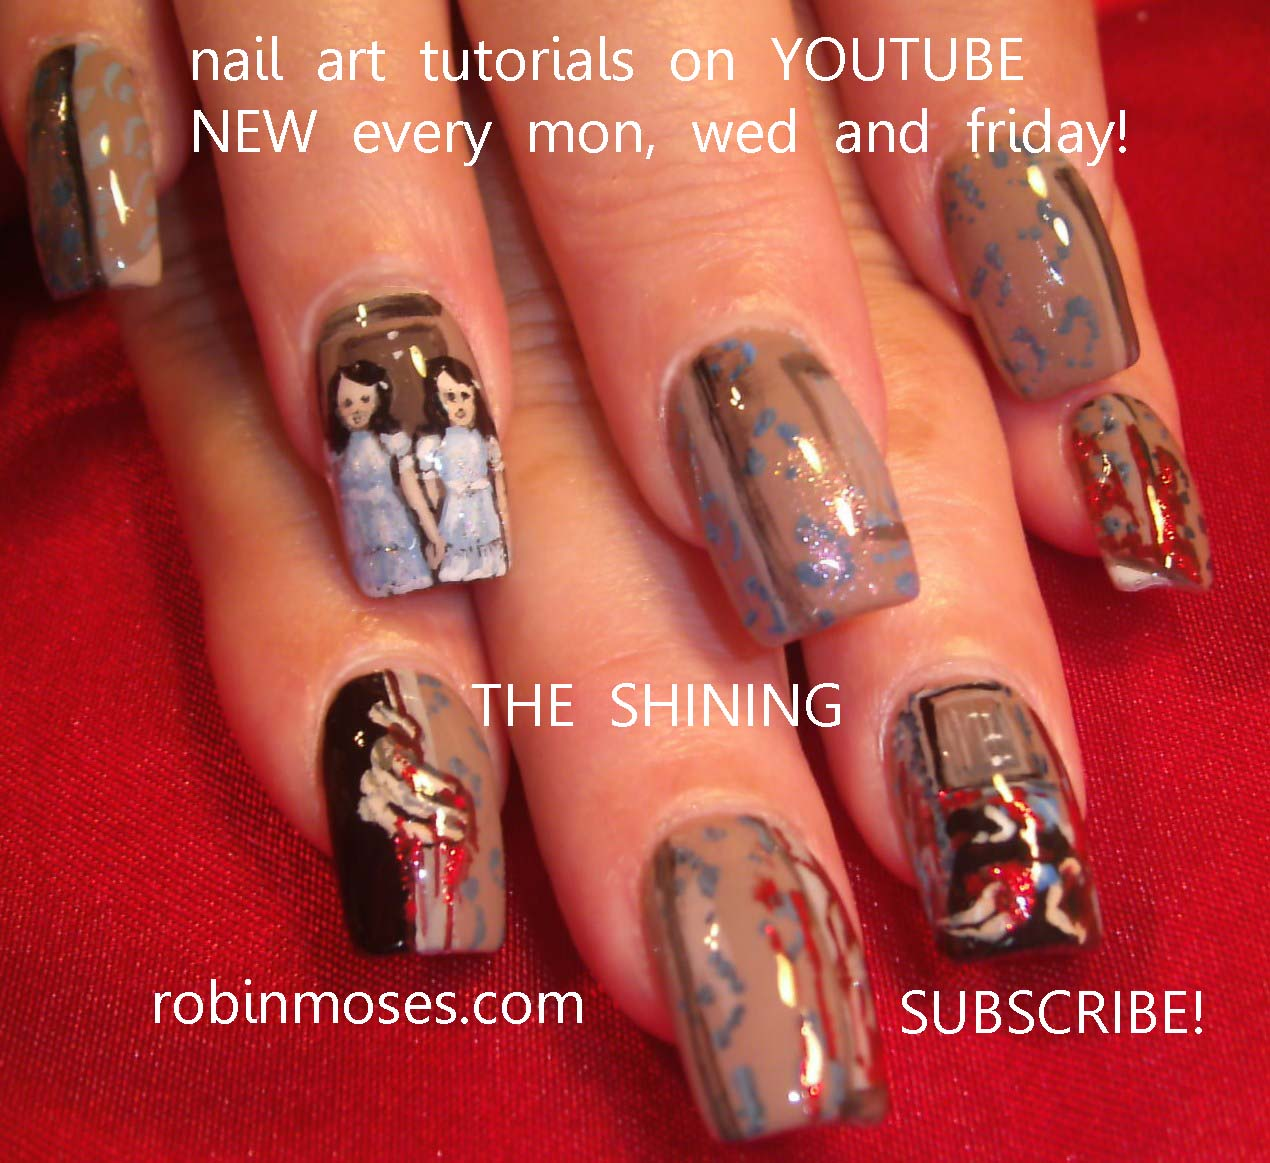 nail art how to, halloween nail, designs nail, design for halloween